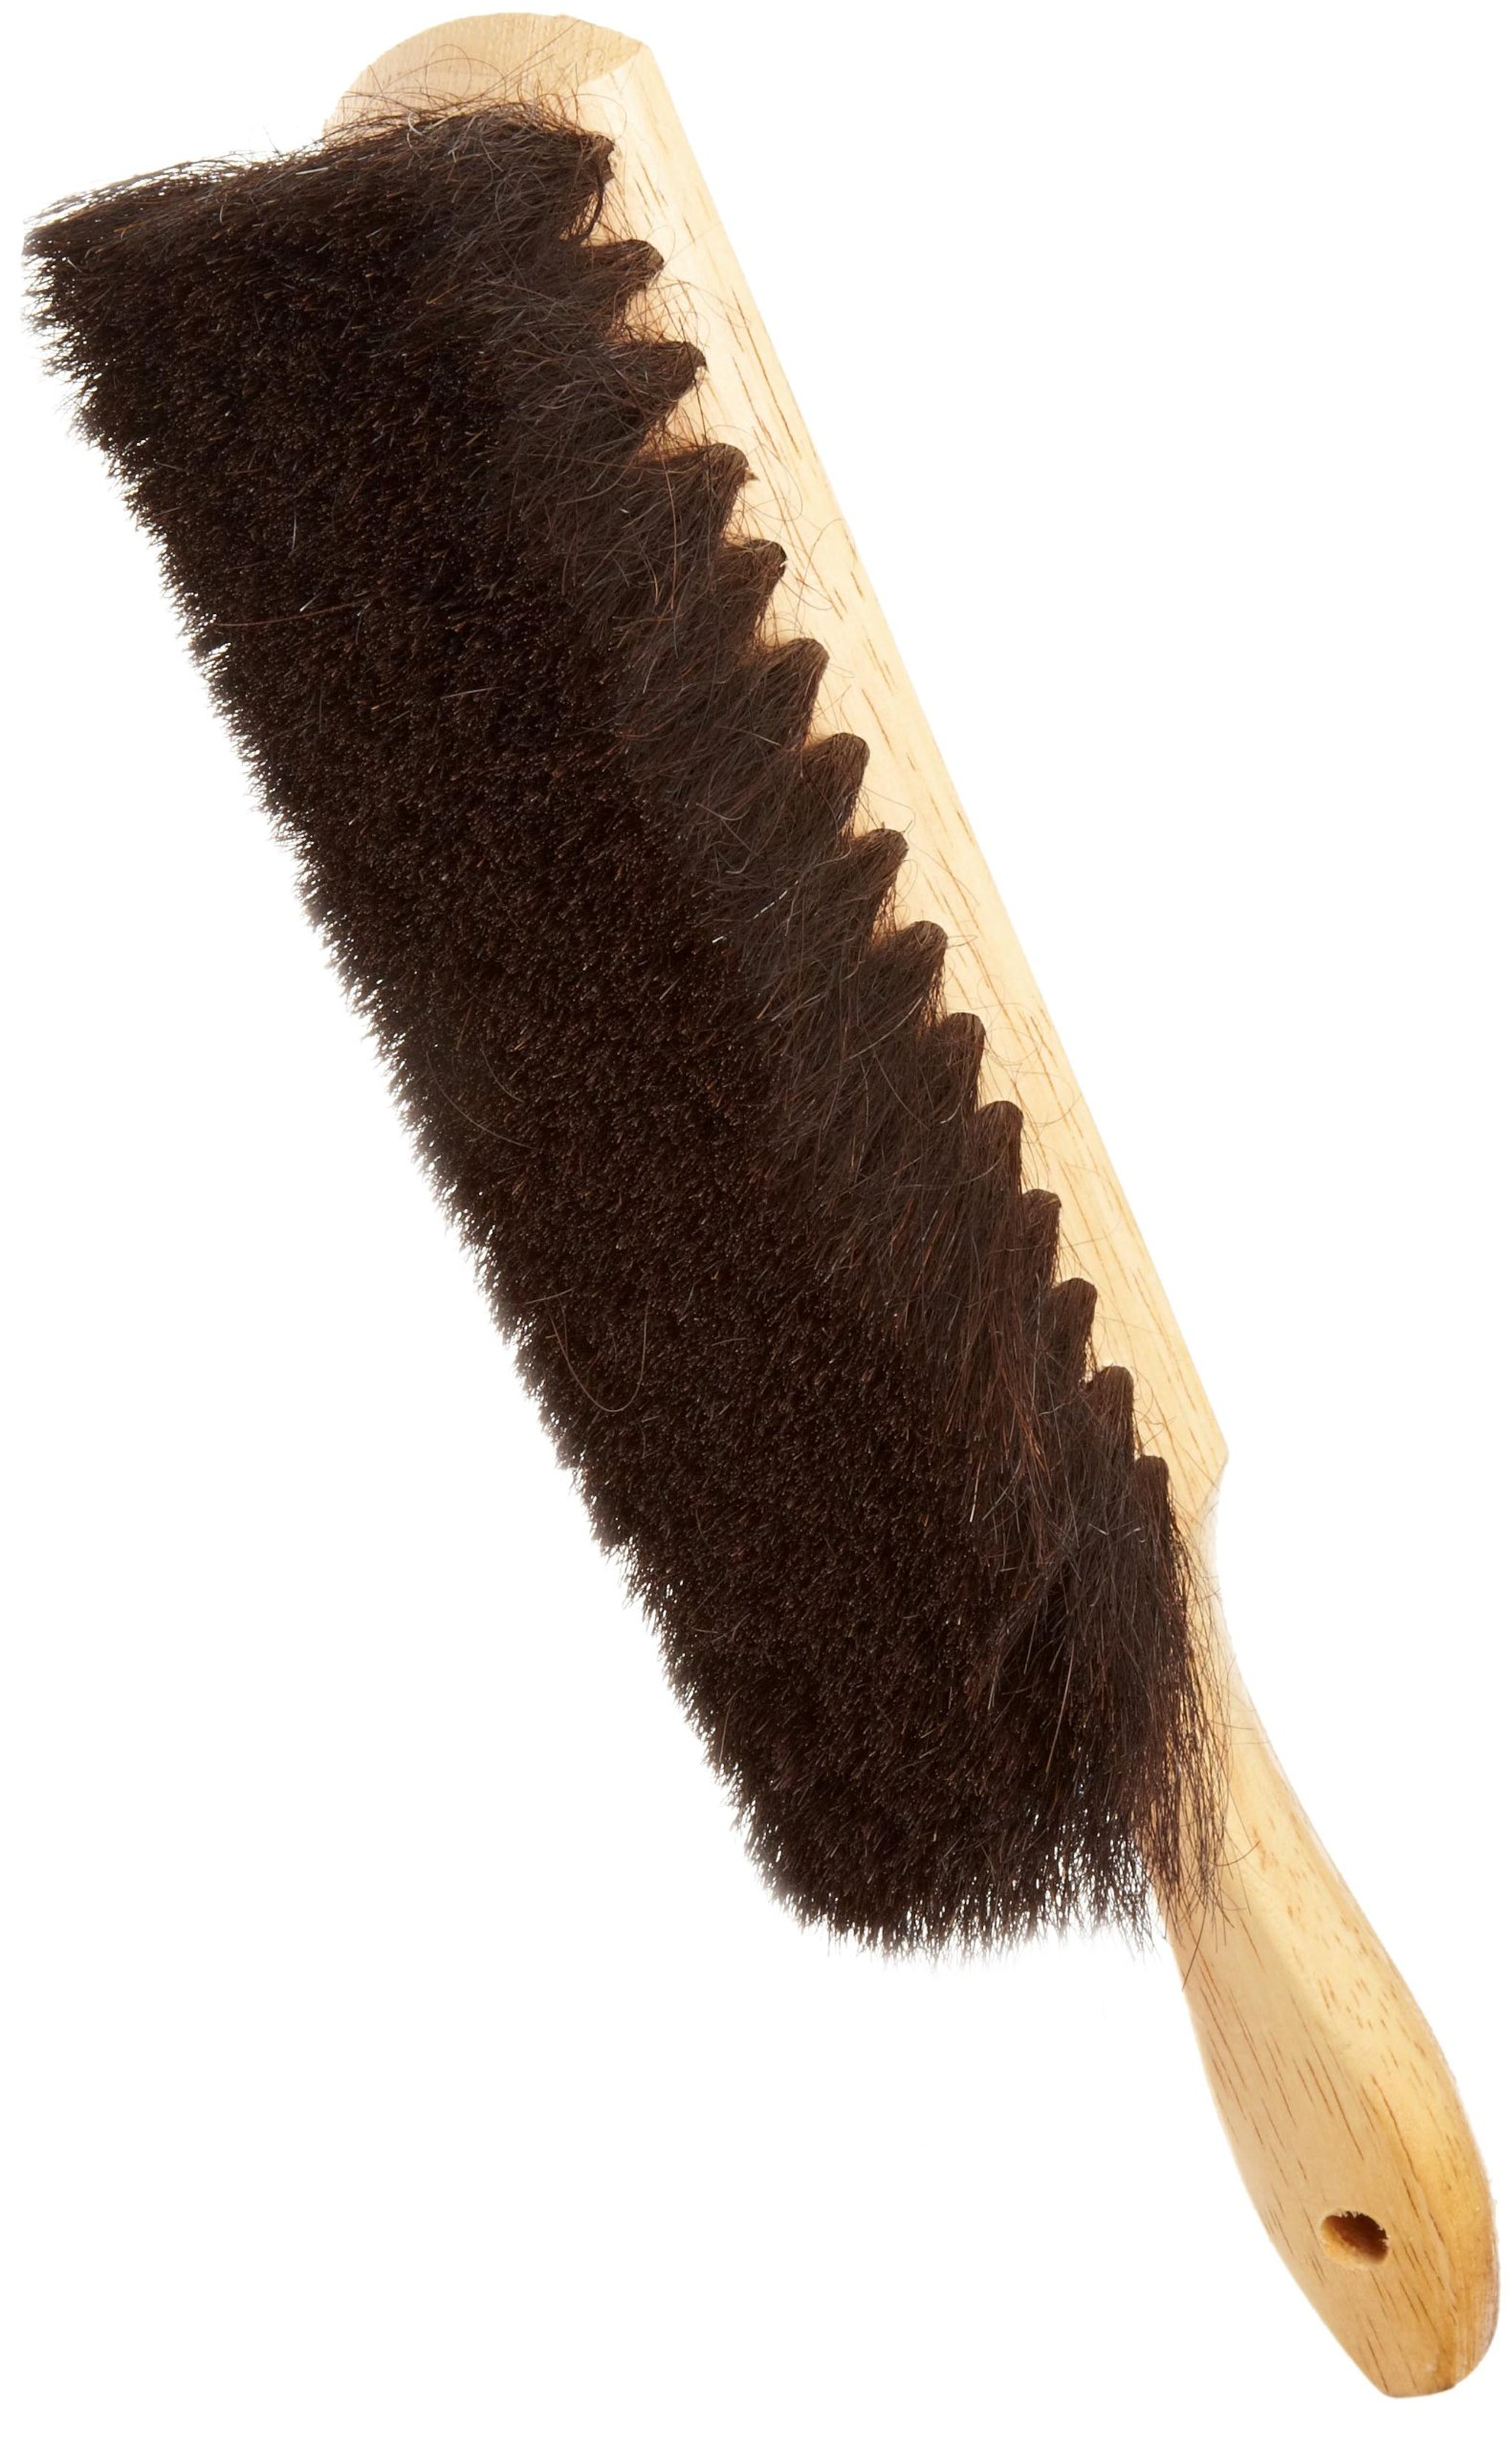 Weiler 44003 Horsehair Counter Duster with Wood Handle, Horsehair Fill, 2-1/2'' Head Width, 8'' Overall Length, Natural